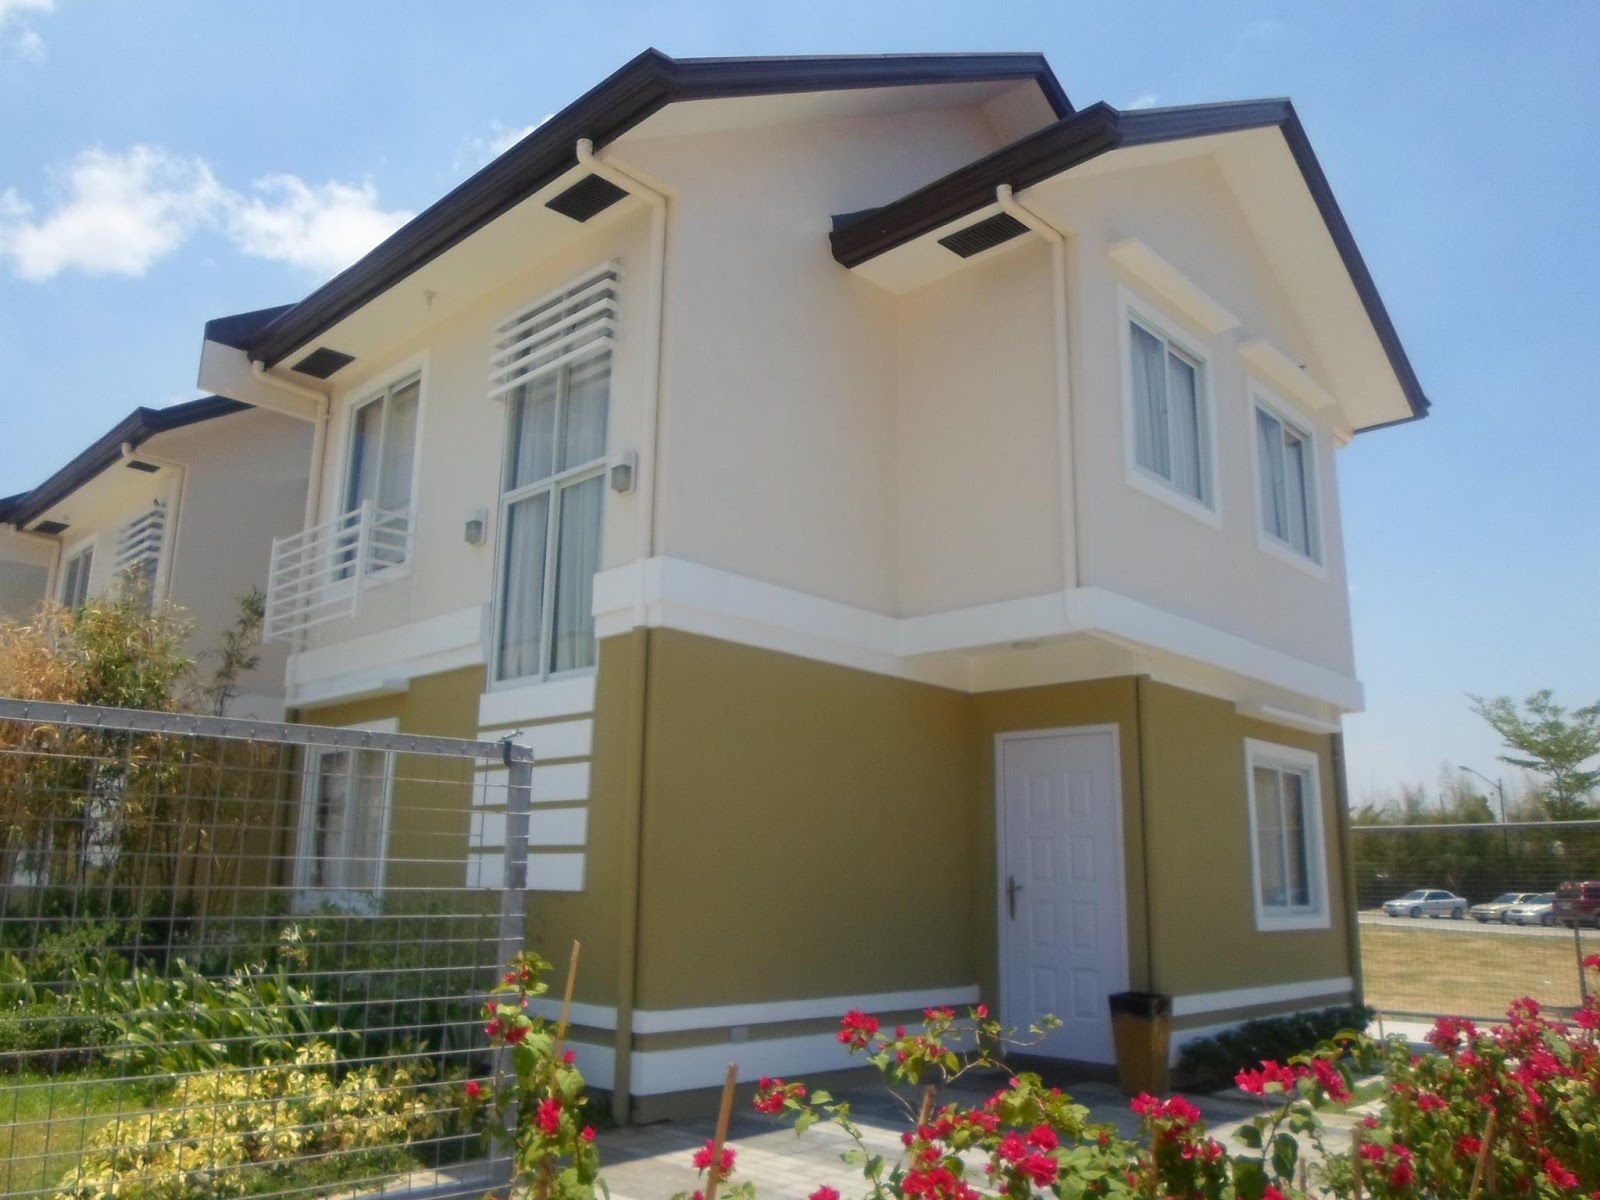 Affordable house design in the philippines lancaster new for Affordable house design philippines